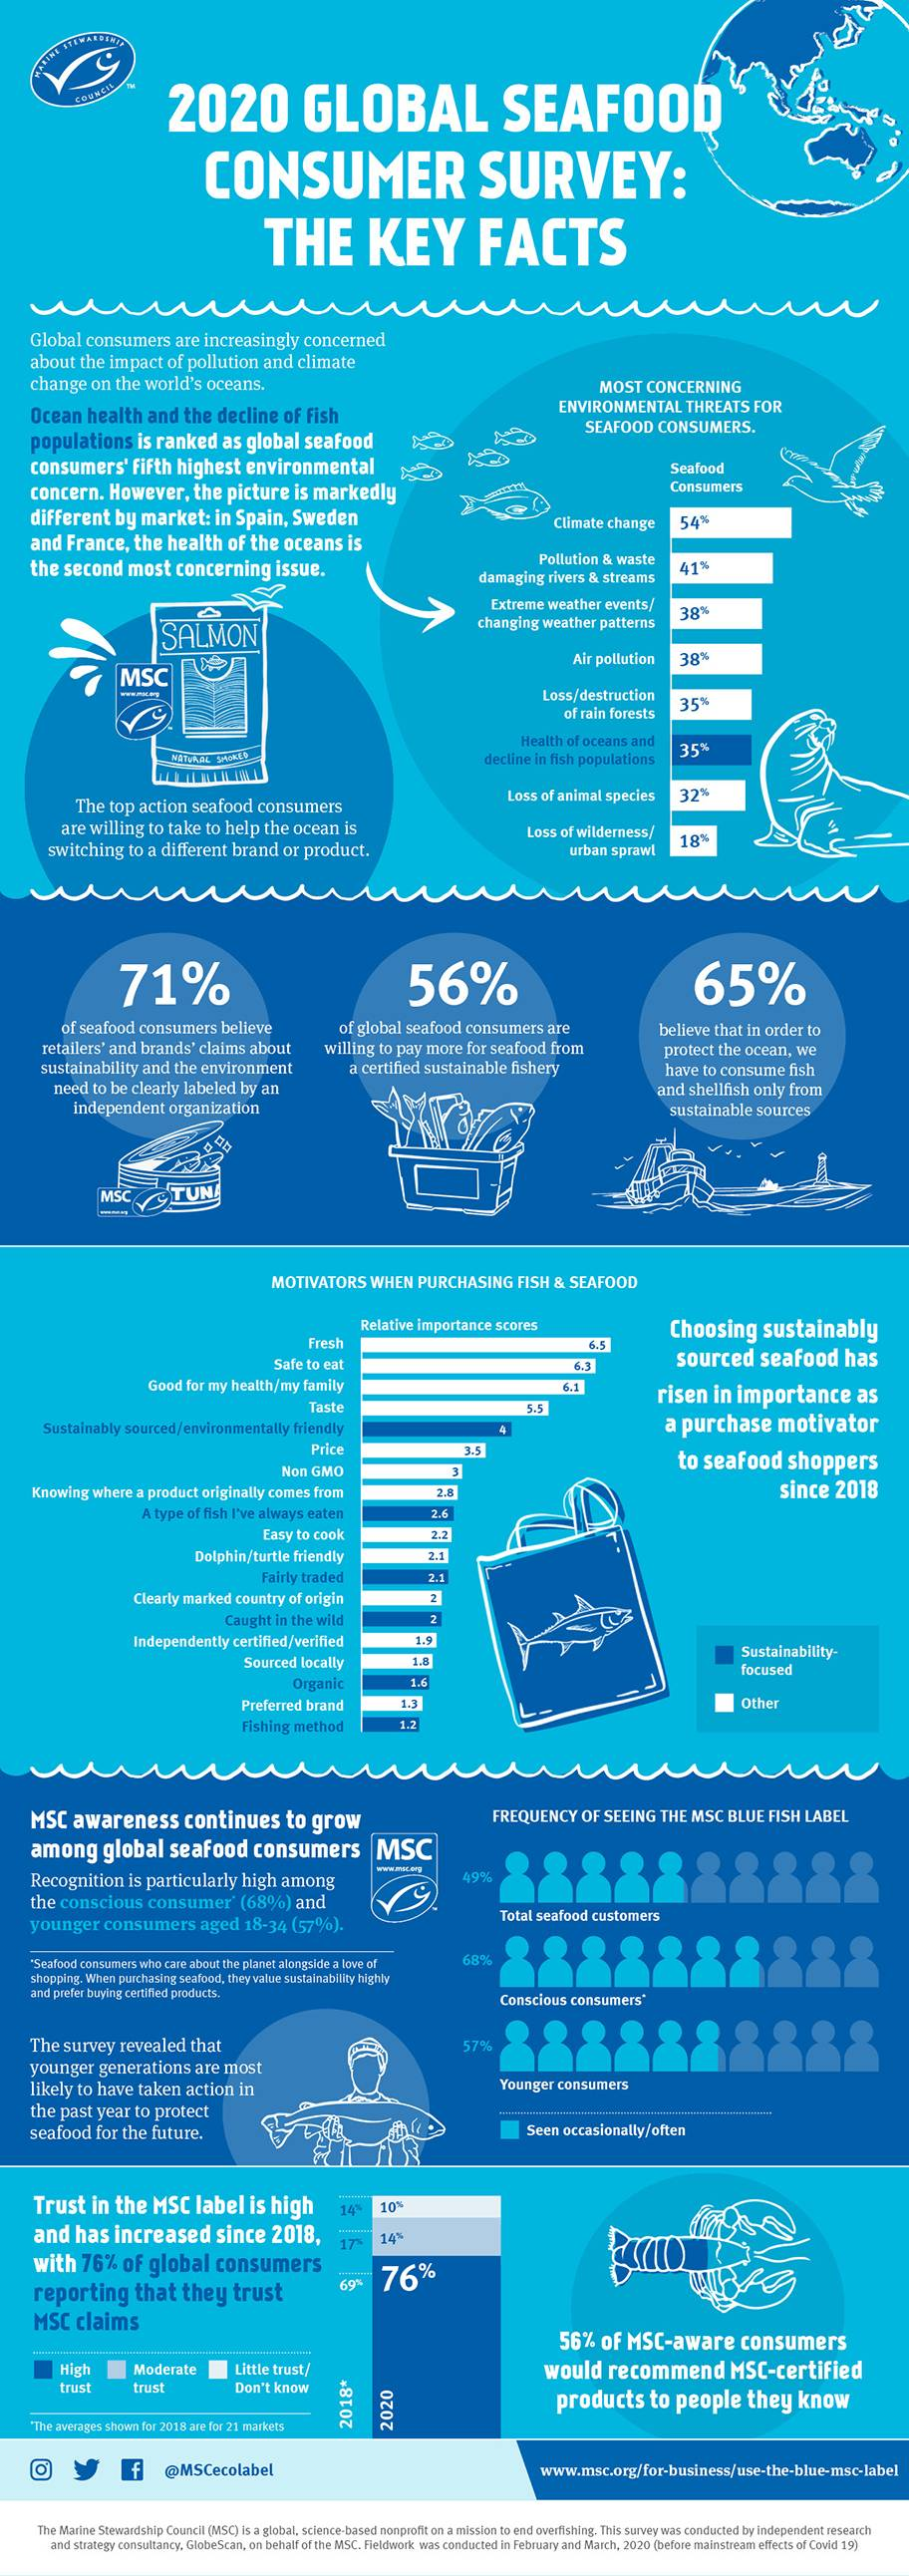 Key facts infographic from MSC and Globescan's 2020 consumer survey results